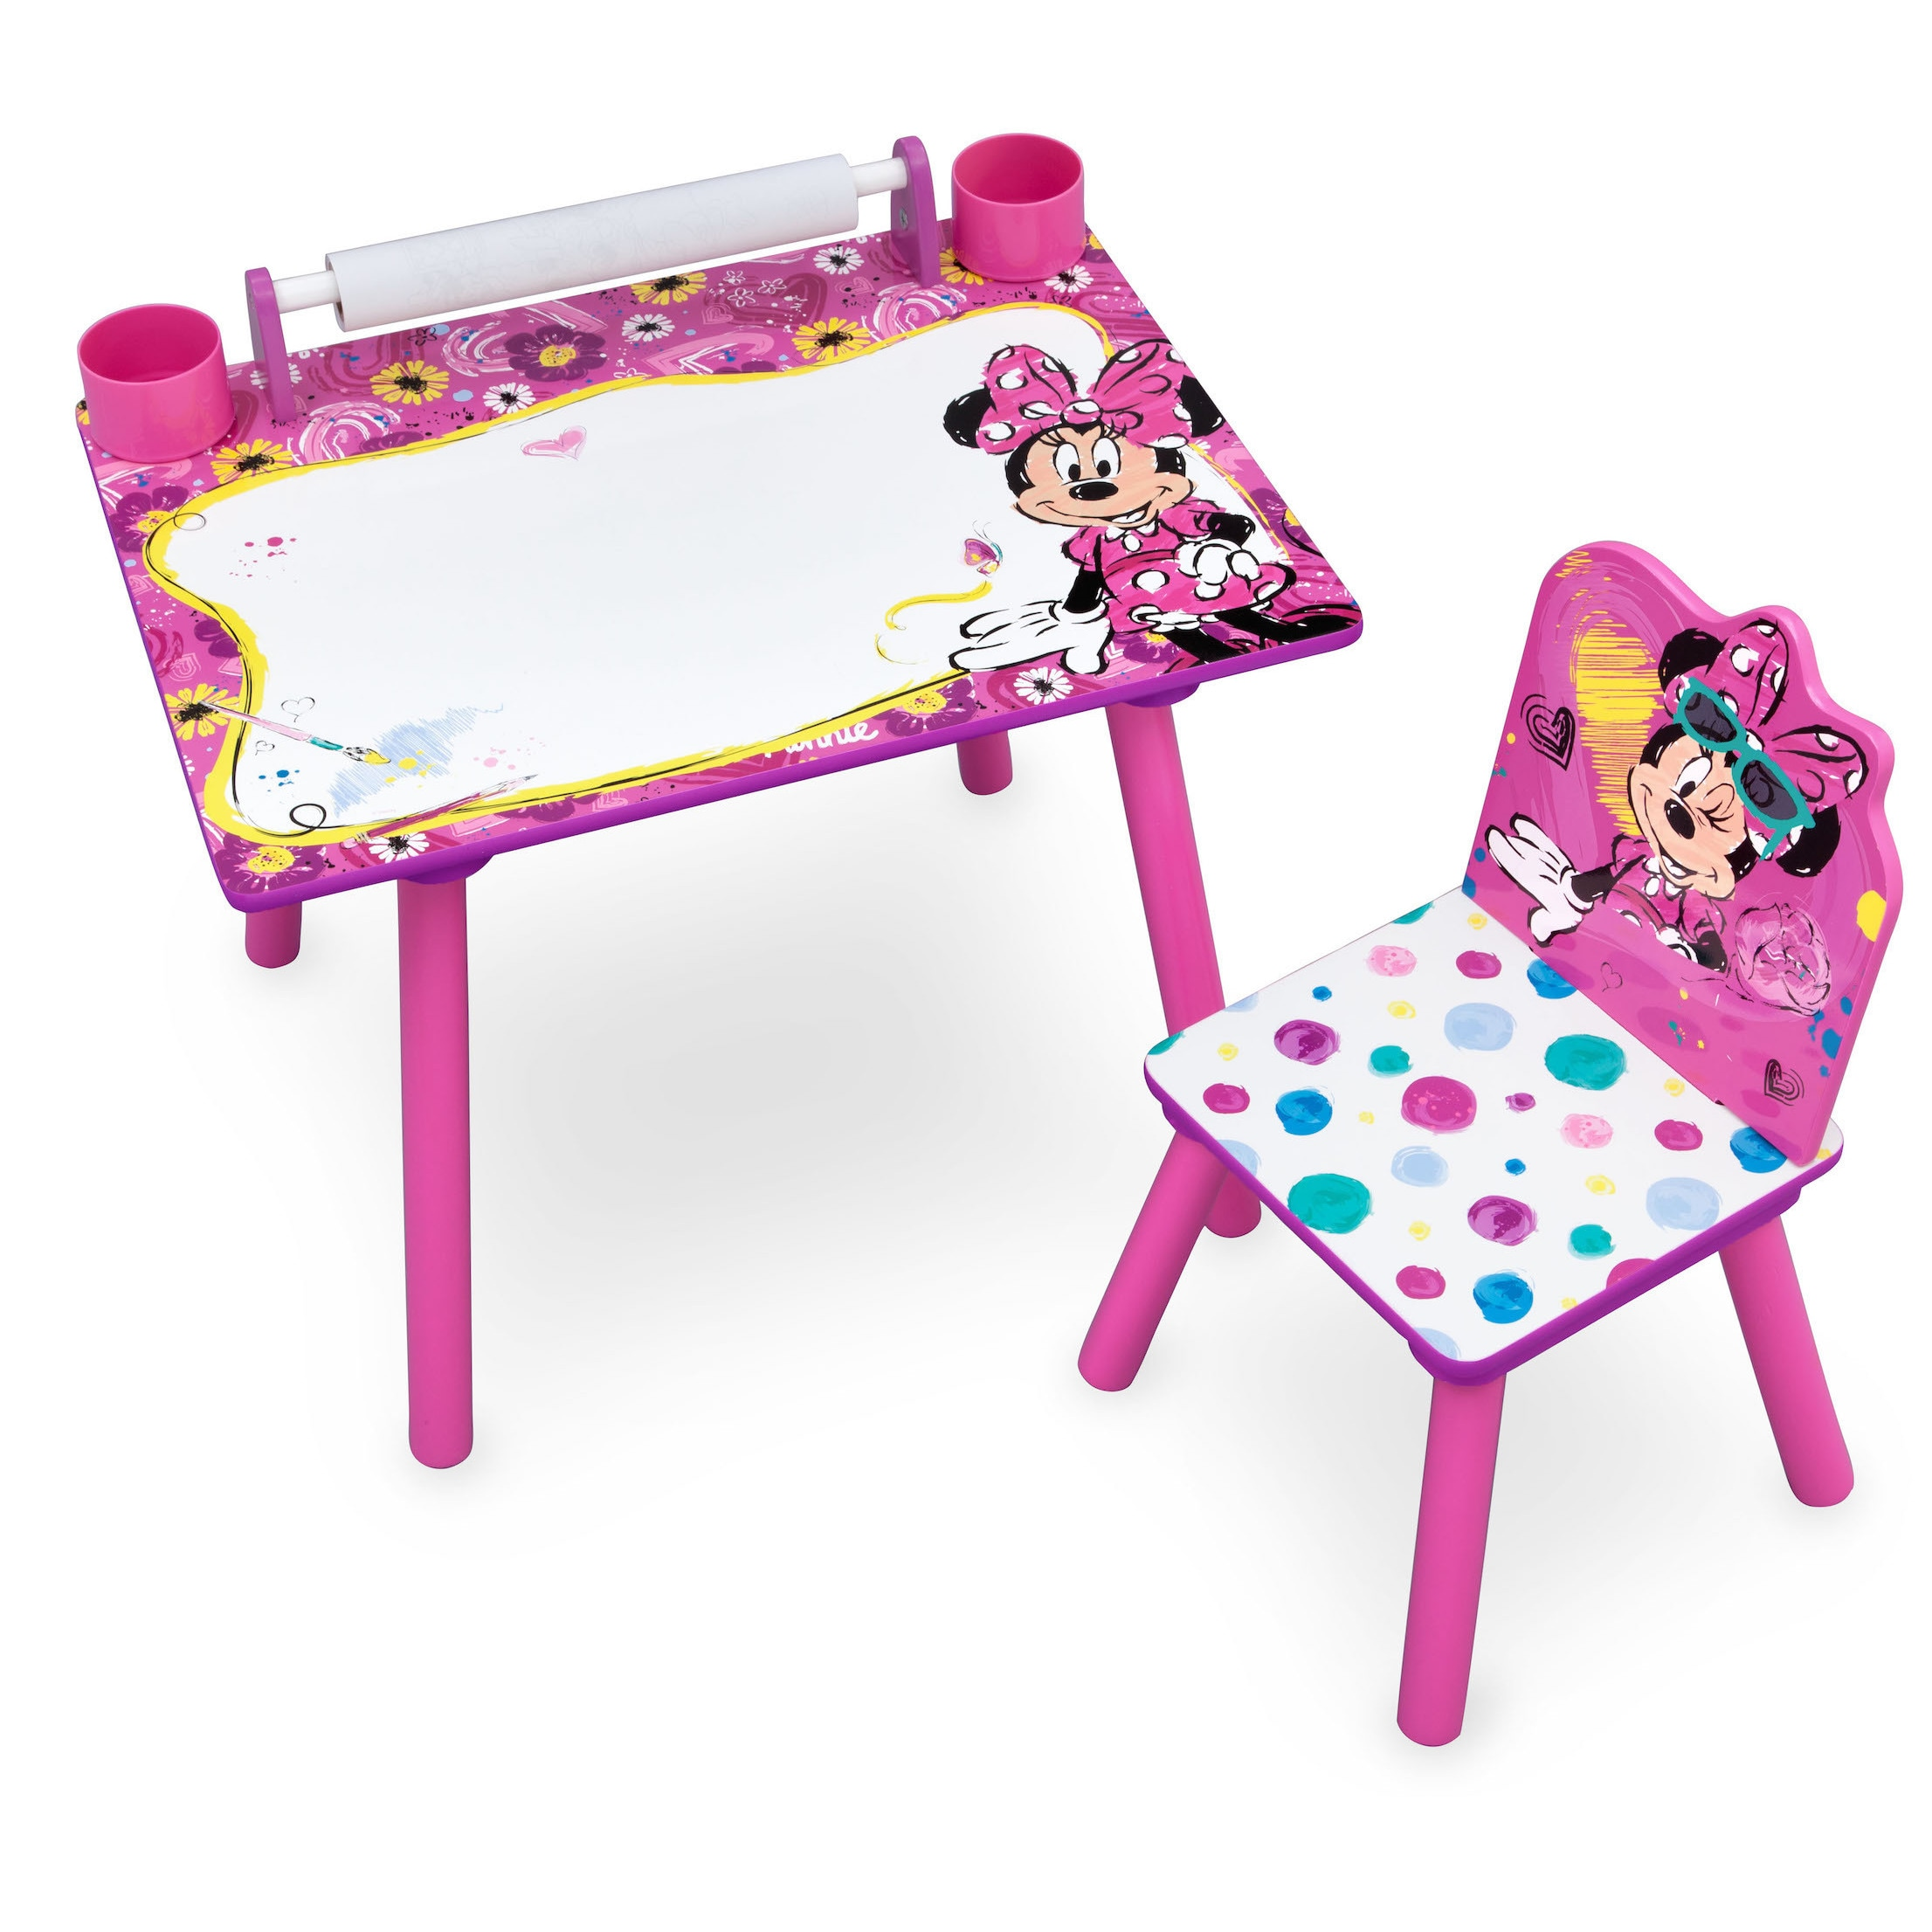 Shop Disney Minnie Mouse Art Desk with Dry-Erase Tabletop by Delta Children - Free Shipping Today - Overstock.com - 15020006  sc 1 st  Overstock.com & Shop Disney Minnie Mouse Art Desk with Dry-Erase Tabletop by Delta ...